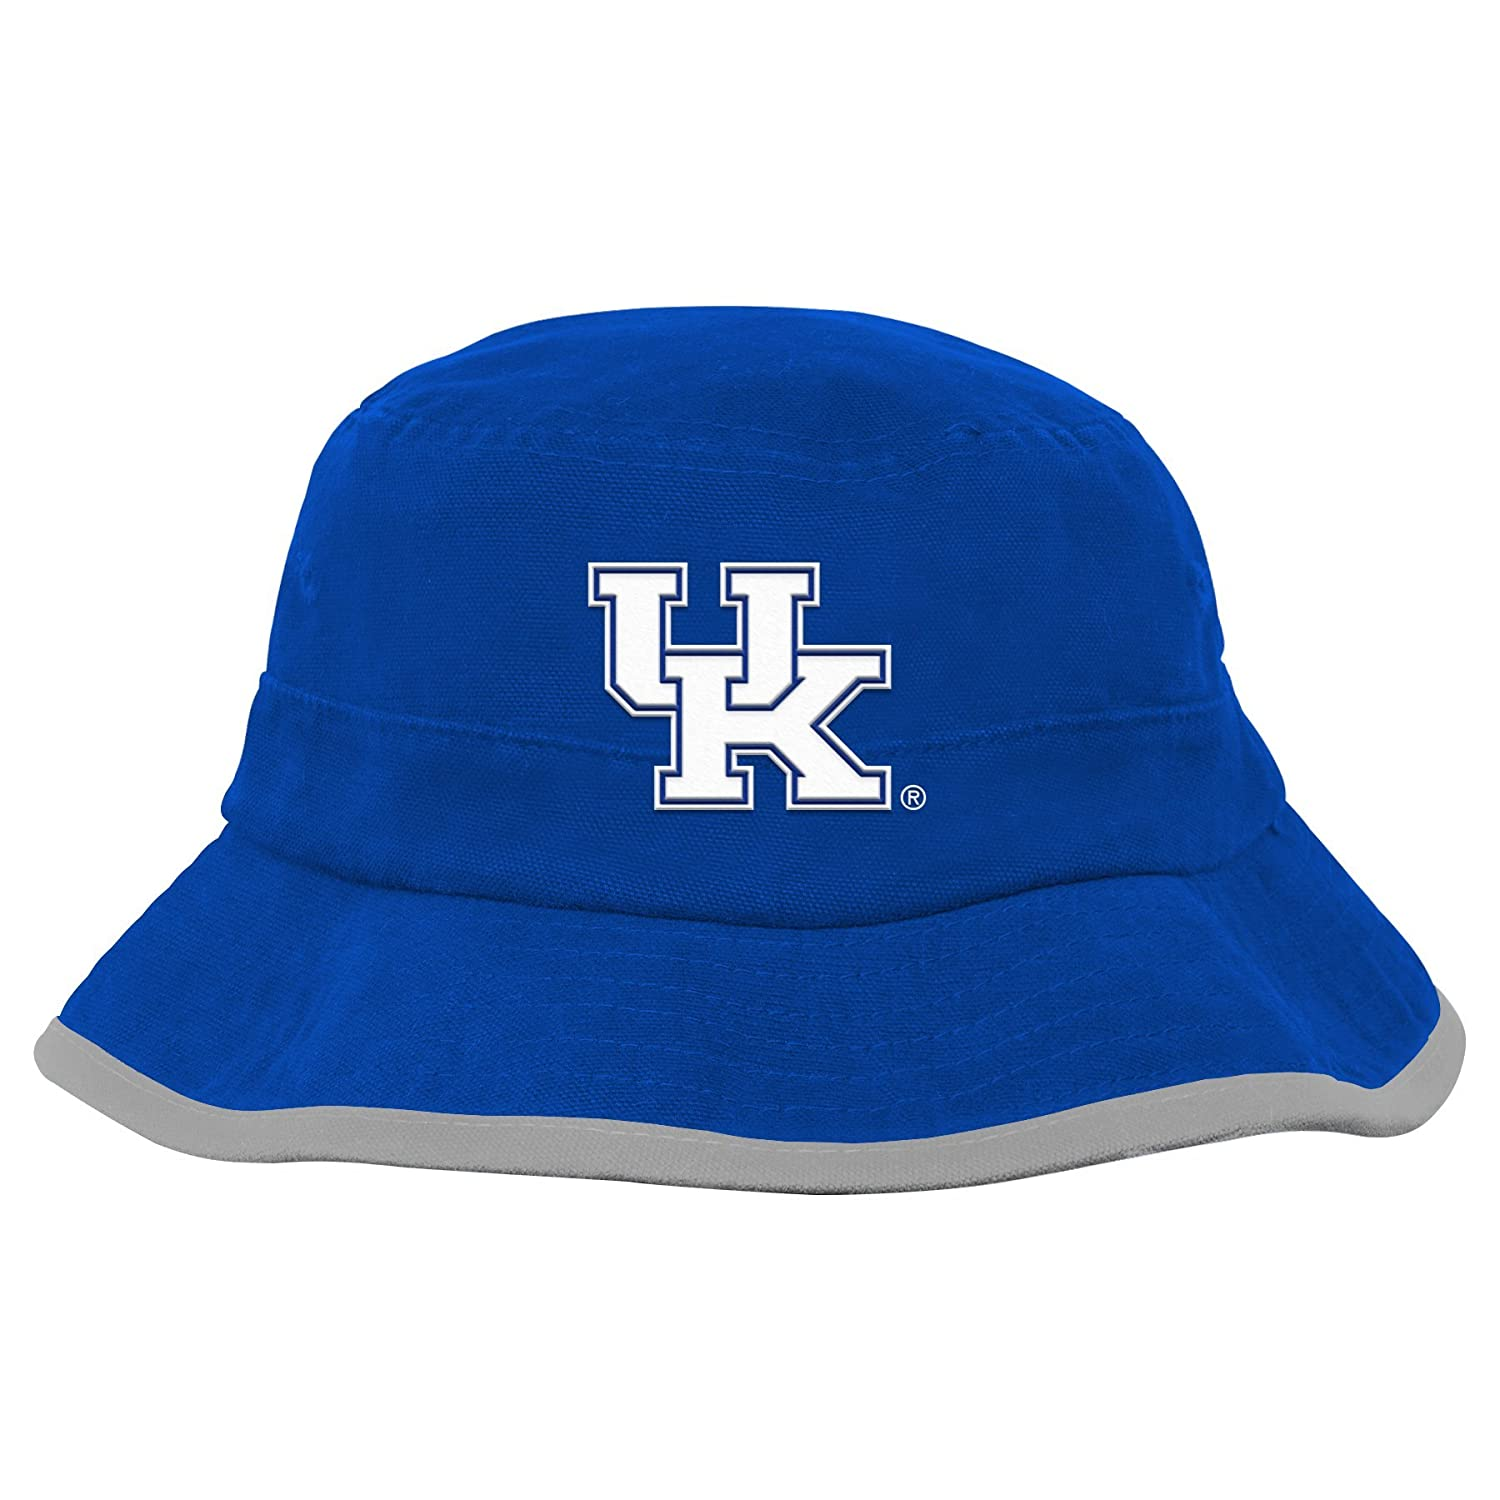 9bd7d12b52bfe Amazon.com   Outerstuff NCAA Kentucky Wildcats Toddler Team Bucket ...